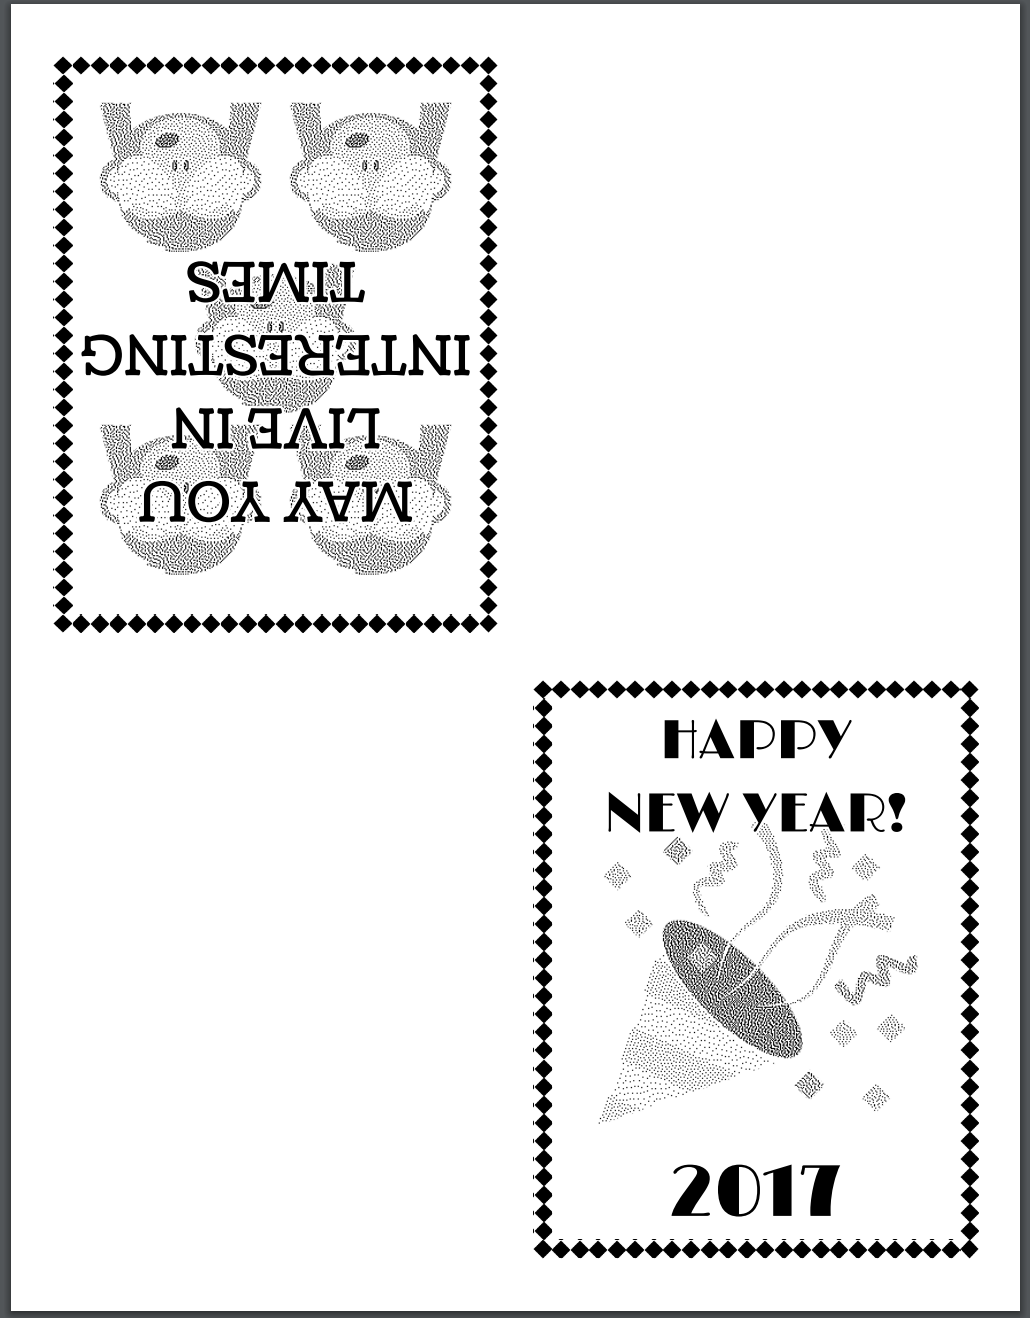 Print Preview of new years card